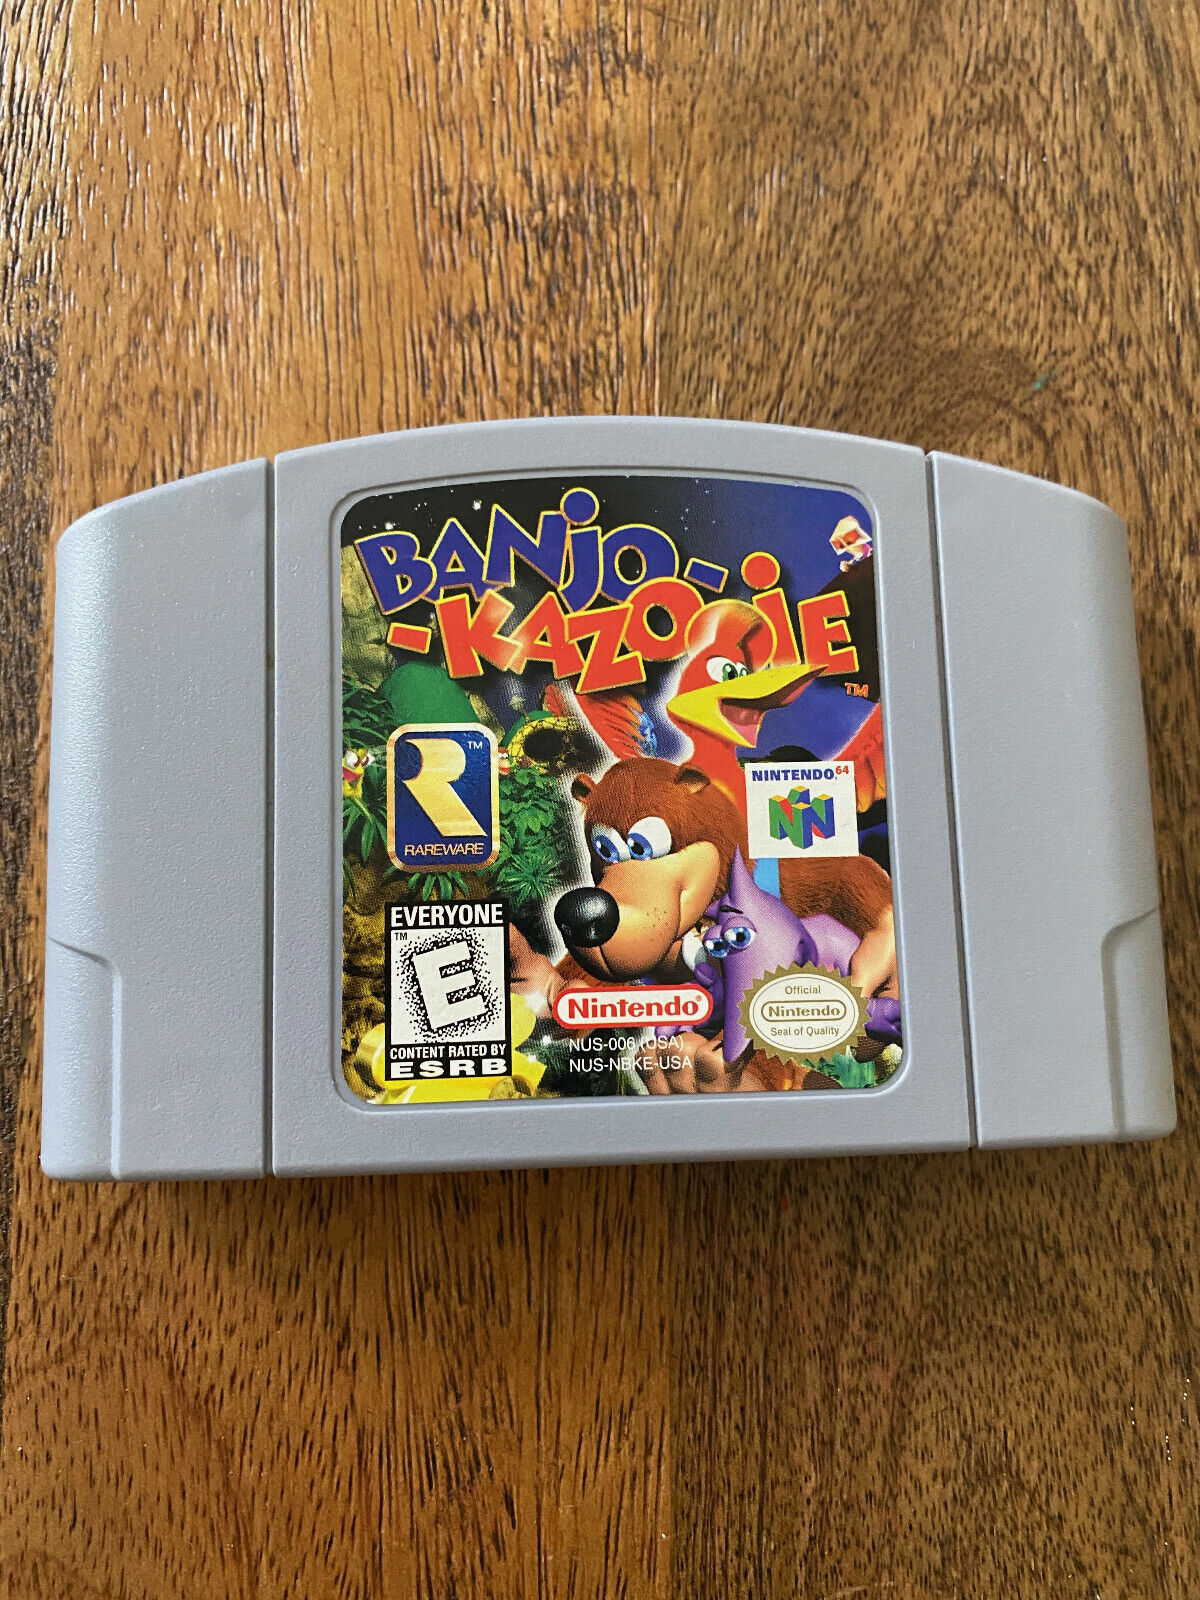 Banjo-Kazooie Nintendo 64 Genuine OEM Authentic - $44.79